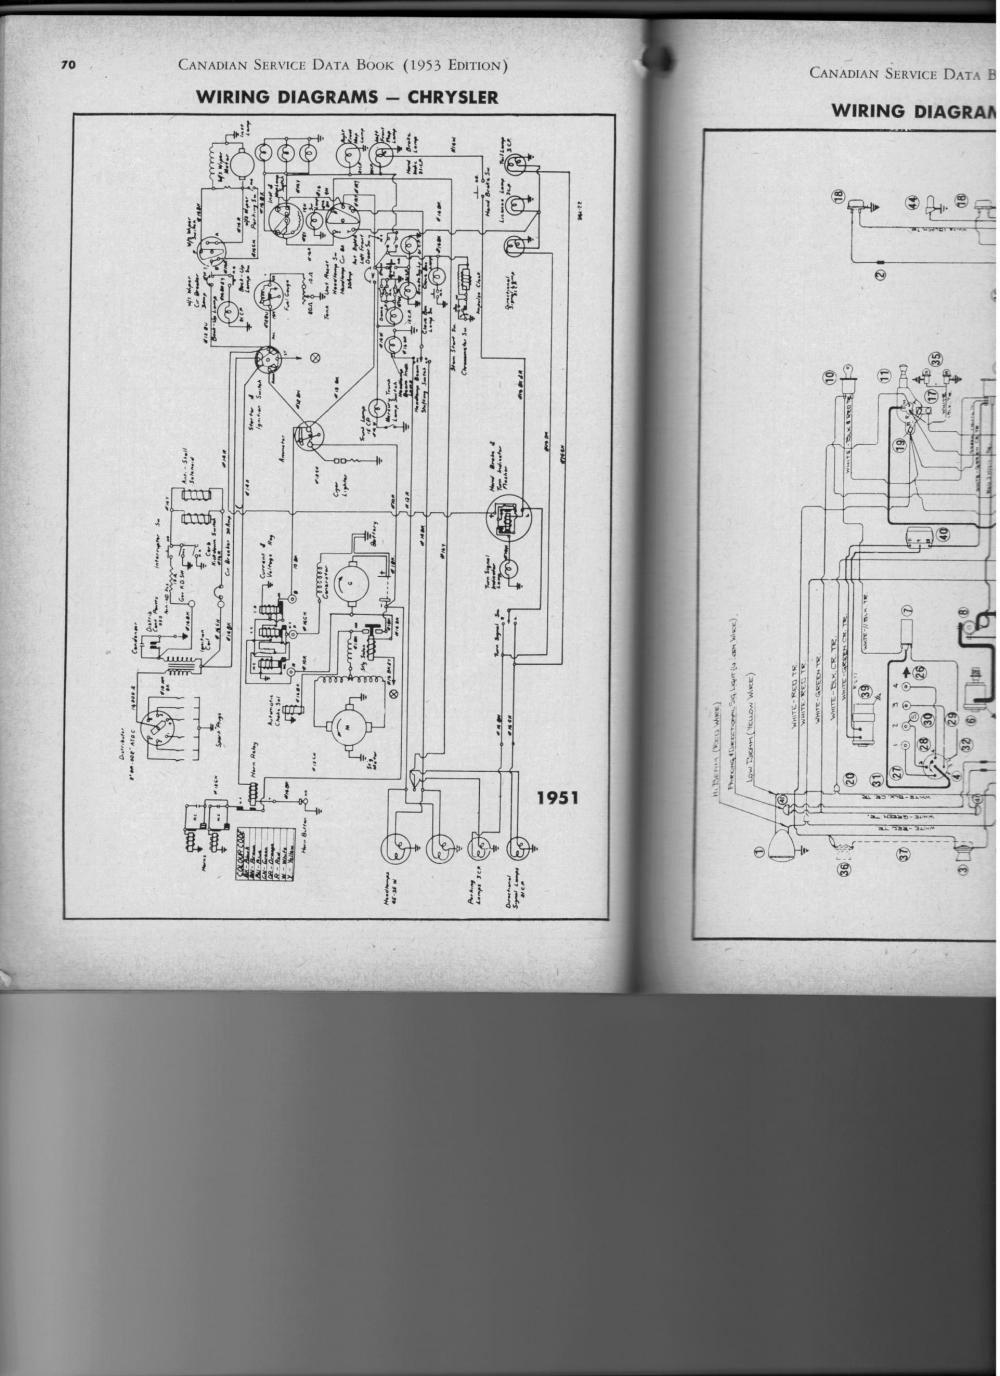 medium resolution of desoto wiring diagram wiring diagrams img1954 mopar wiring diagrams wiring diagrams electrical wiring diagrams desoto wiring